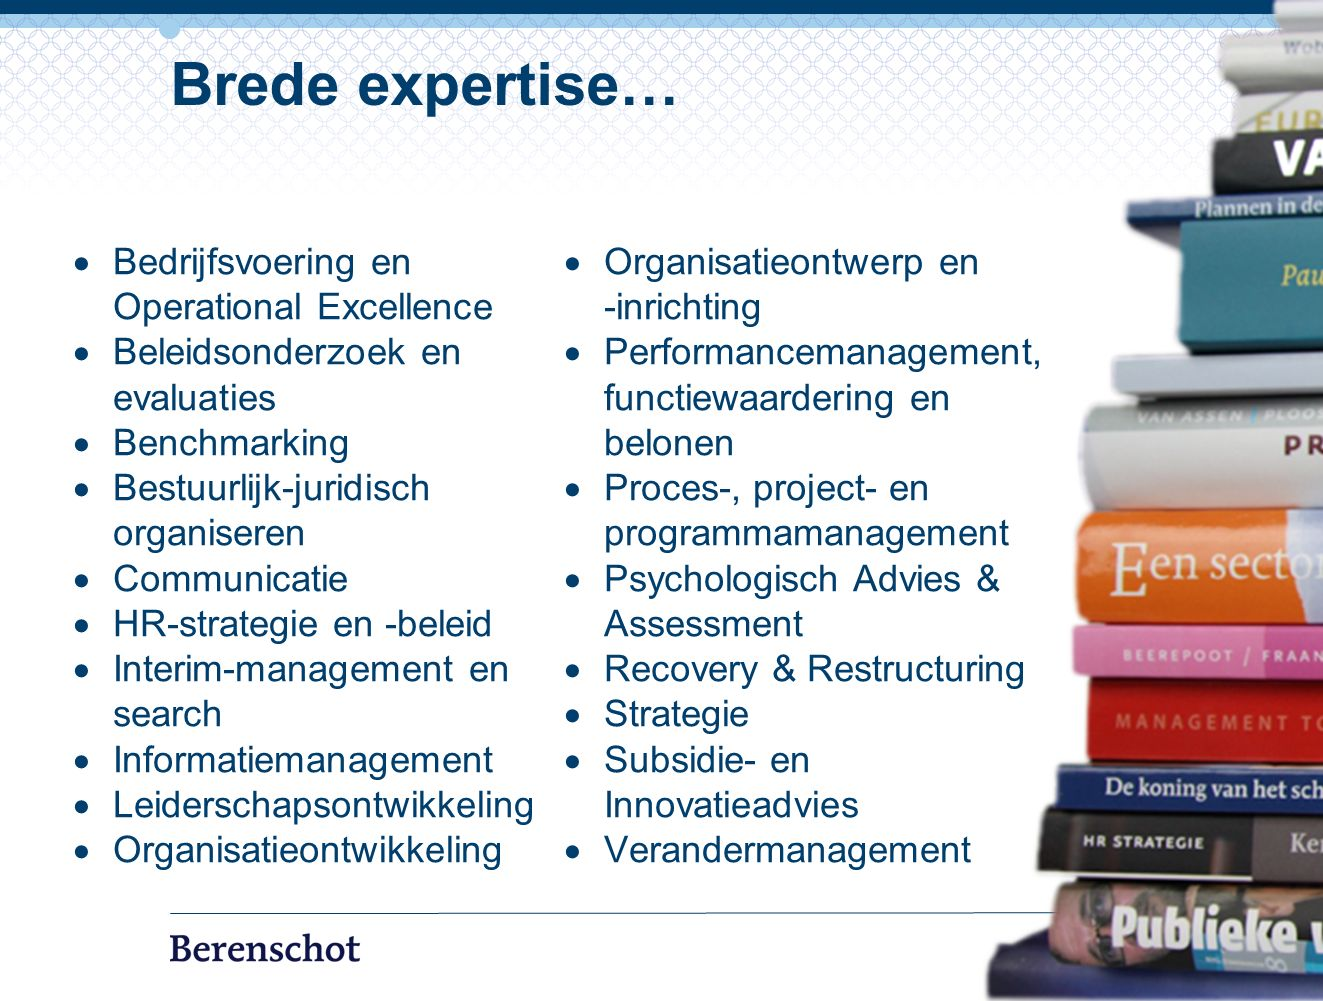  Bedrijfsvoering en Operational Excellence  Beleidsonderzoek en evaluaties  Benchmarking  Bestuurlijk-juridisch organiseren  Communicatie  HR-strategie en -beleid  Interim-management en search  Informatiemanagement  Leiderschapsontwikkeling  Organisatieontwikkeling  Organisatieontwerp en -inrichting  Performancemanagement, functiewaardering en belonen  Proces-, project- en programmamanagement  Psychologisch Advies & Assessment  Recovery & Restructuring  Strategie  Subsidie- en Innovatieadvies  Verandermanagement 7 Brede expertise…